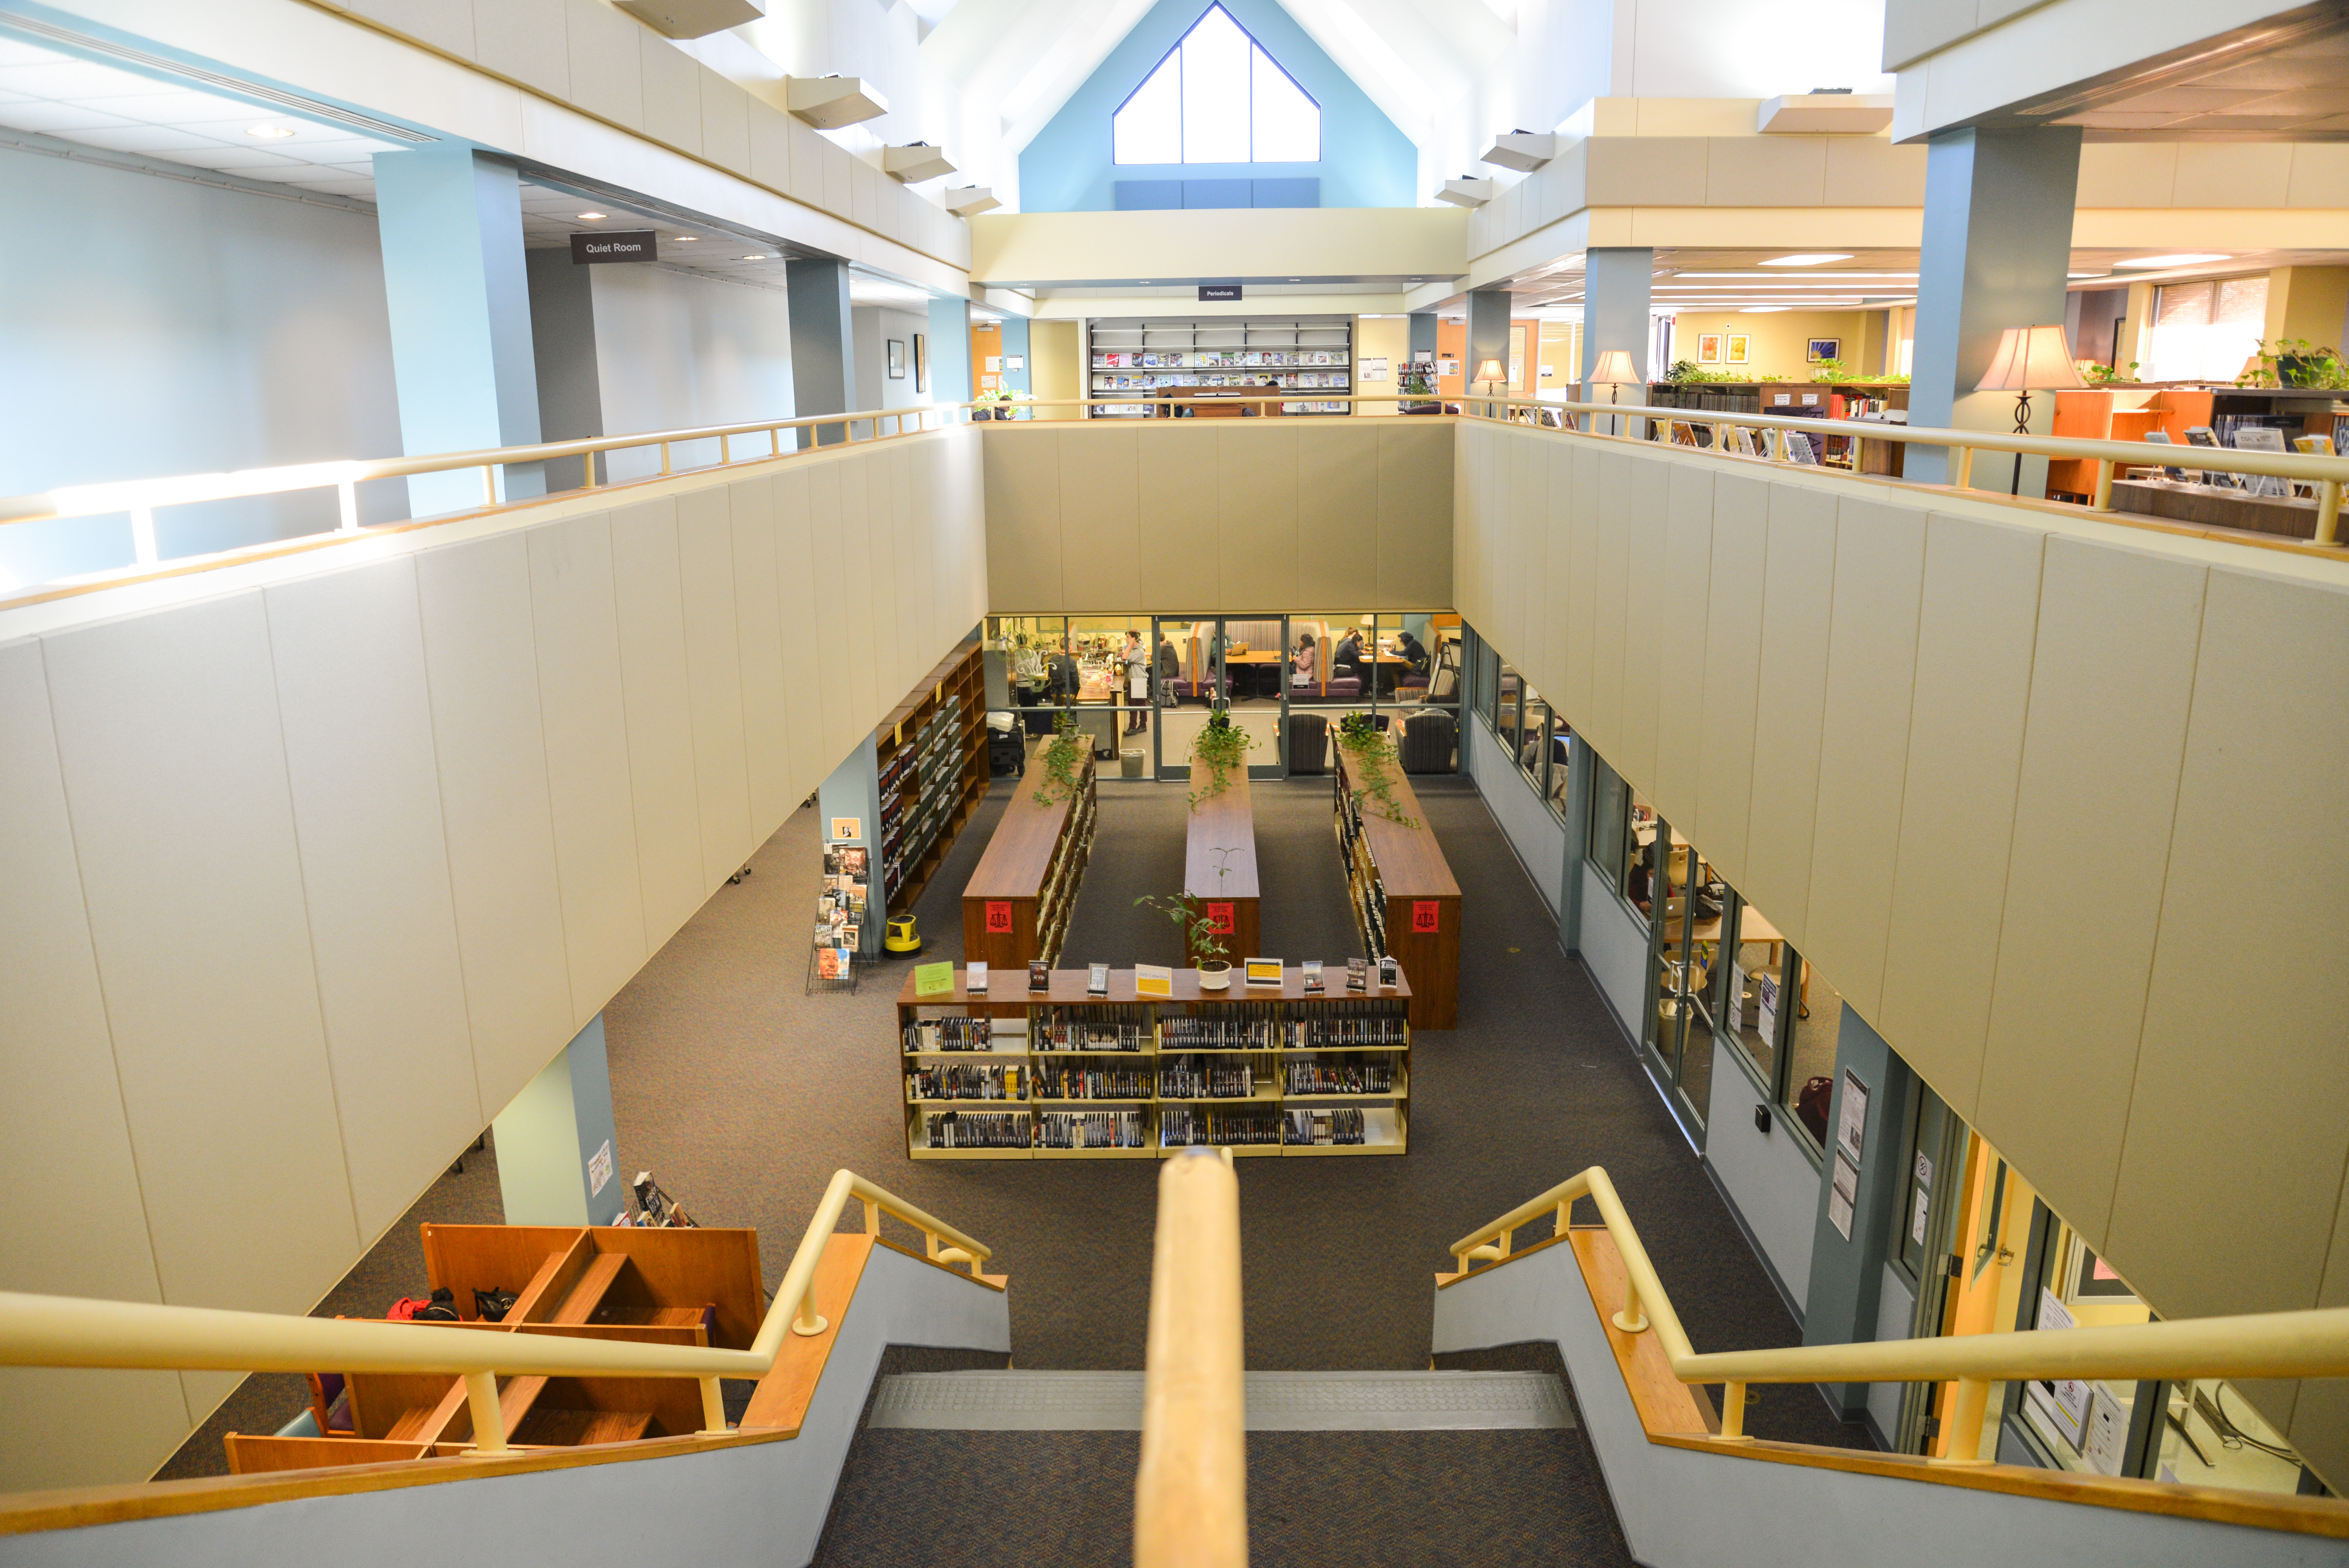 View from the top of the stairs in the library.